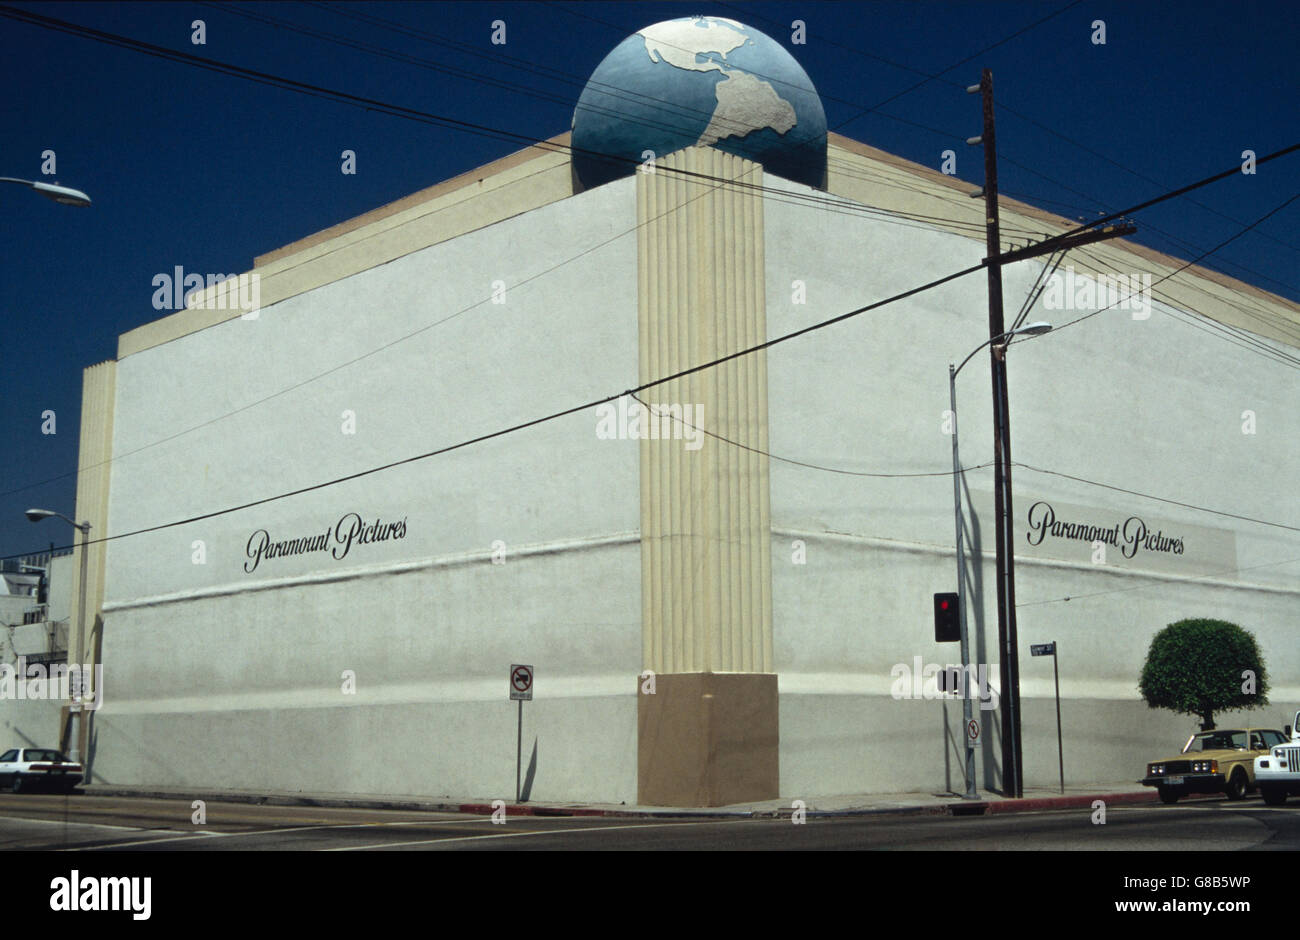 Archive image of Paramount Pictures building, former RKO